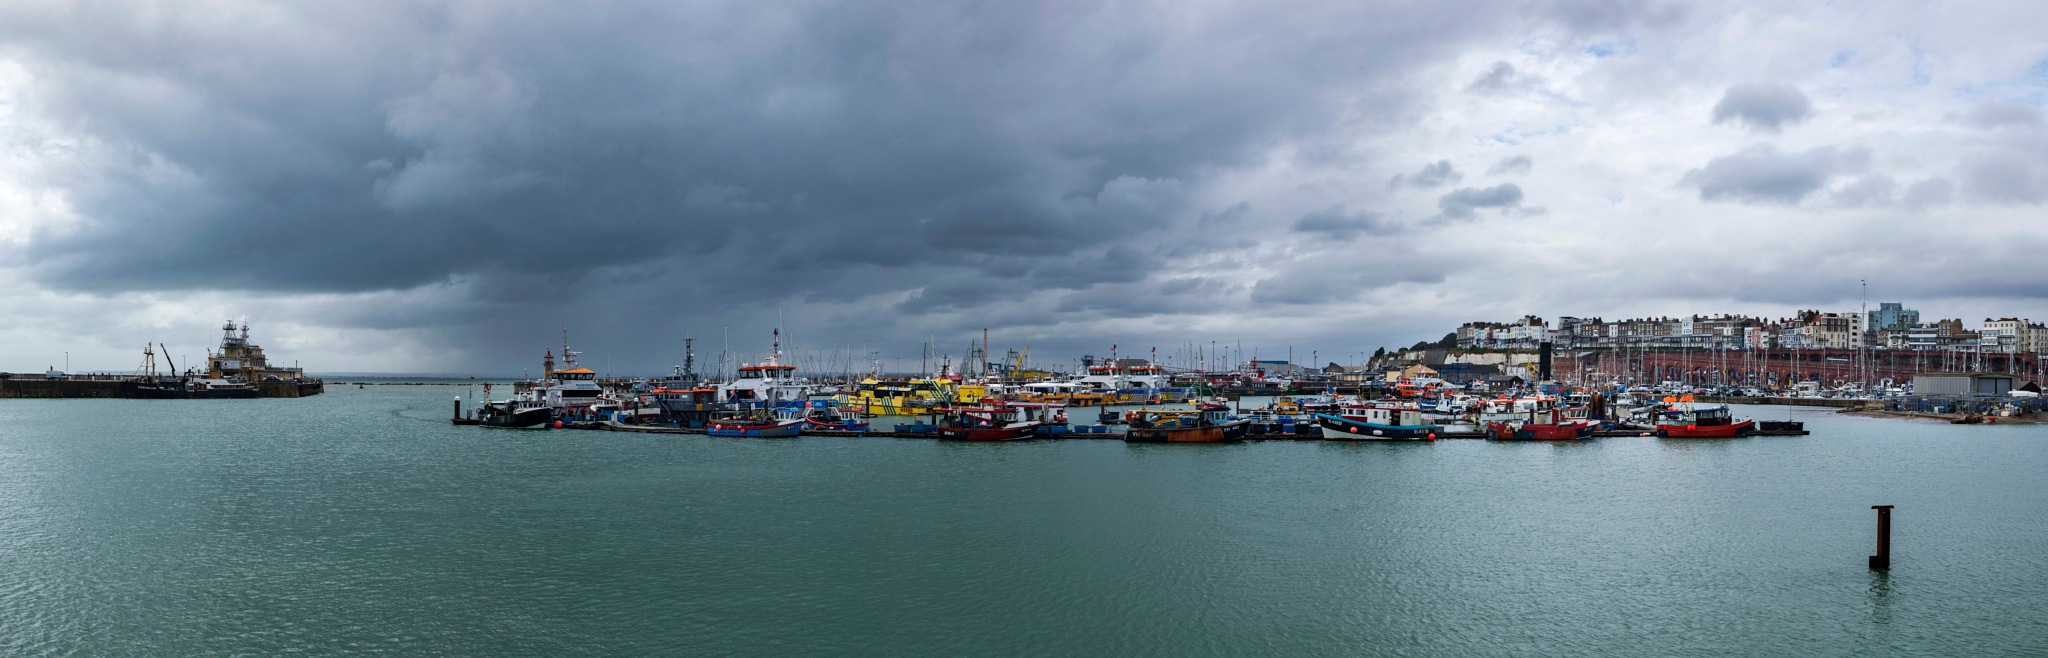 Ramsgate Harbour. by Dave121